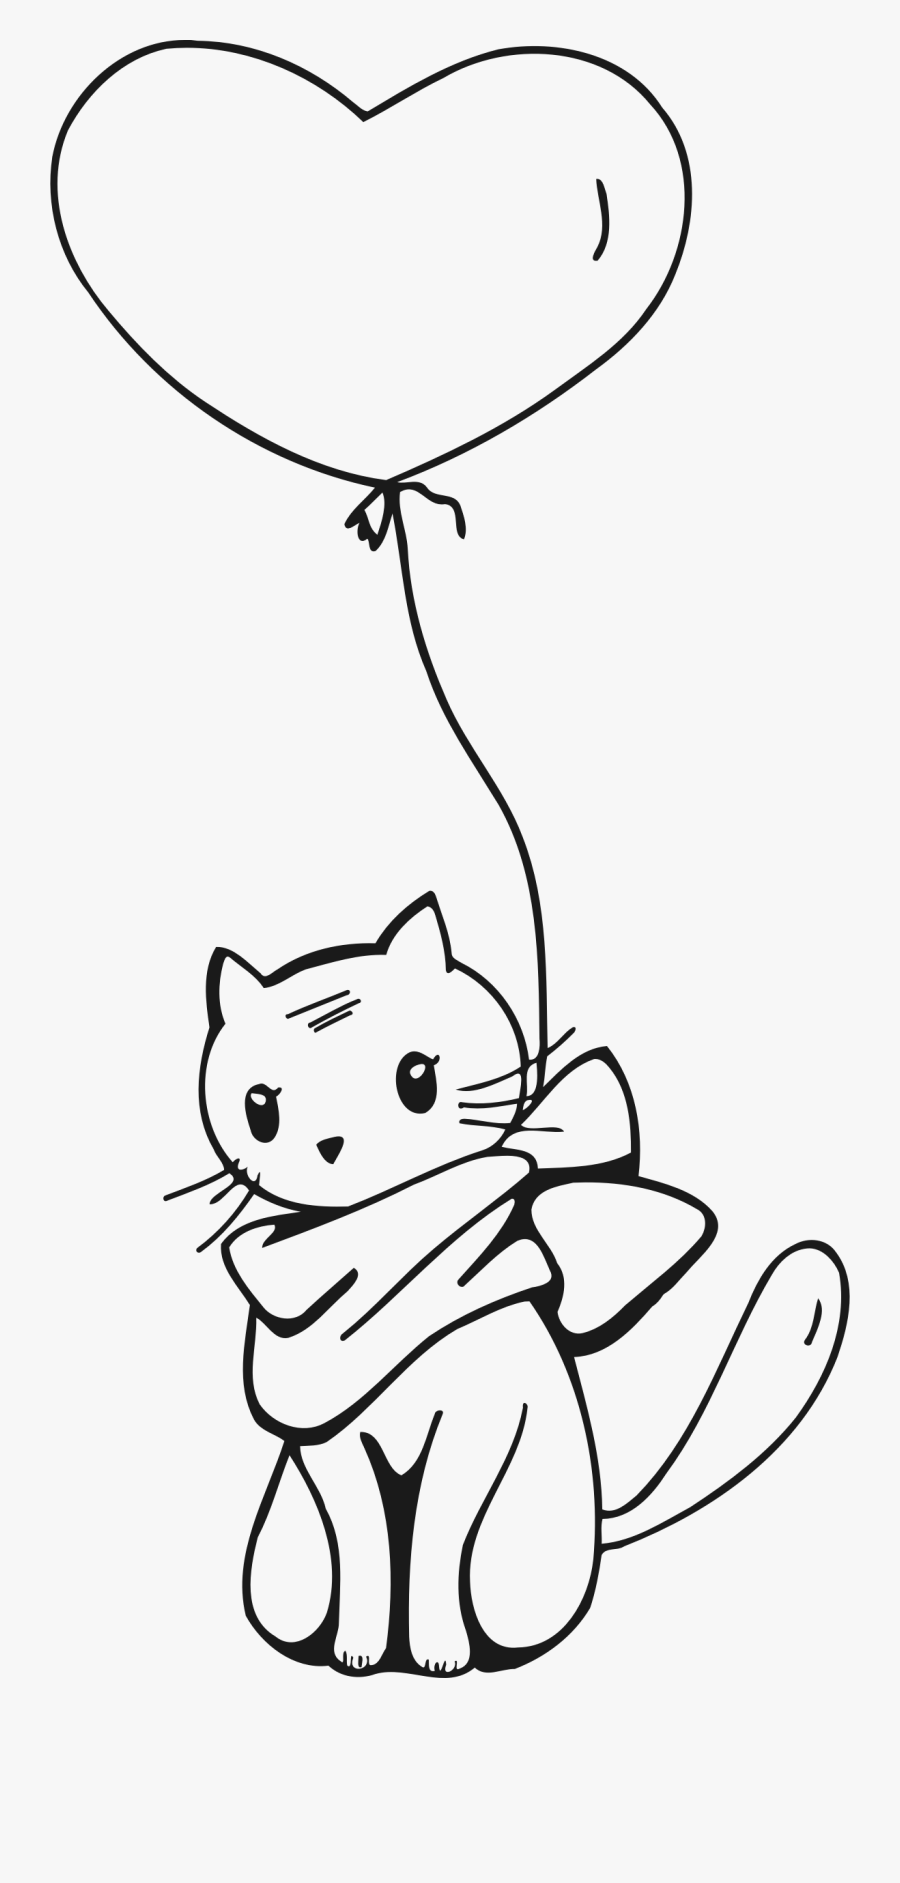 Cat Clipart Tail - Cat With Balloon Drawing, Transparent Clipart